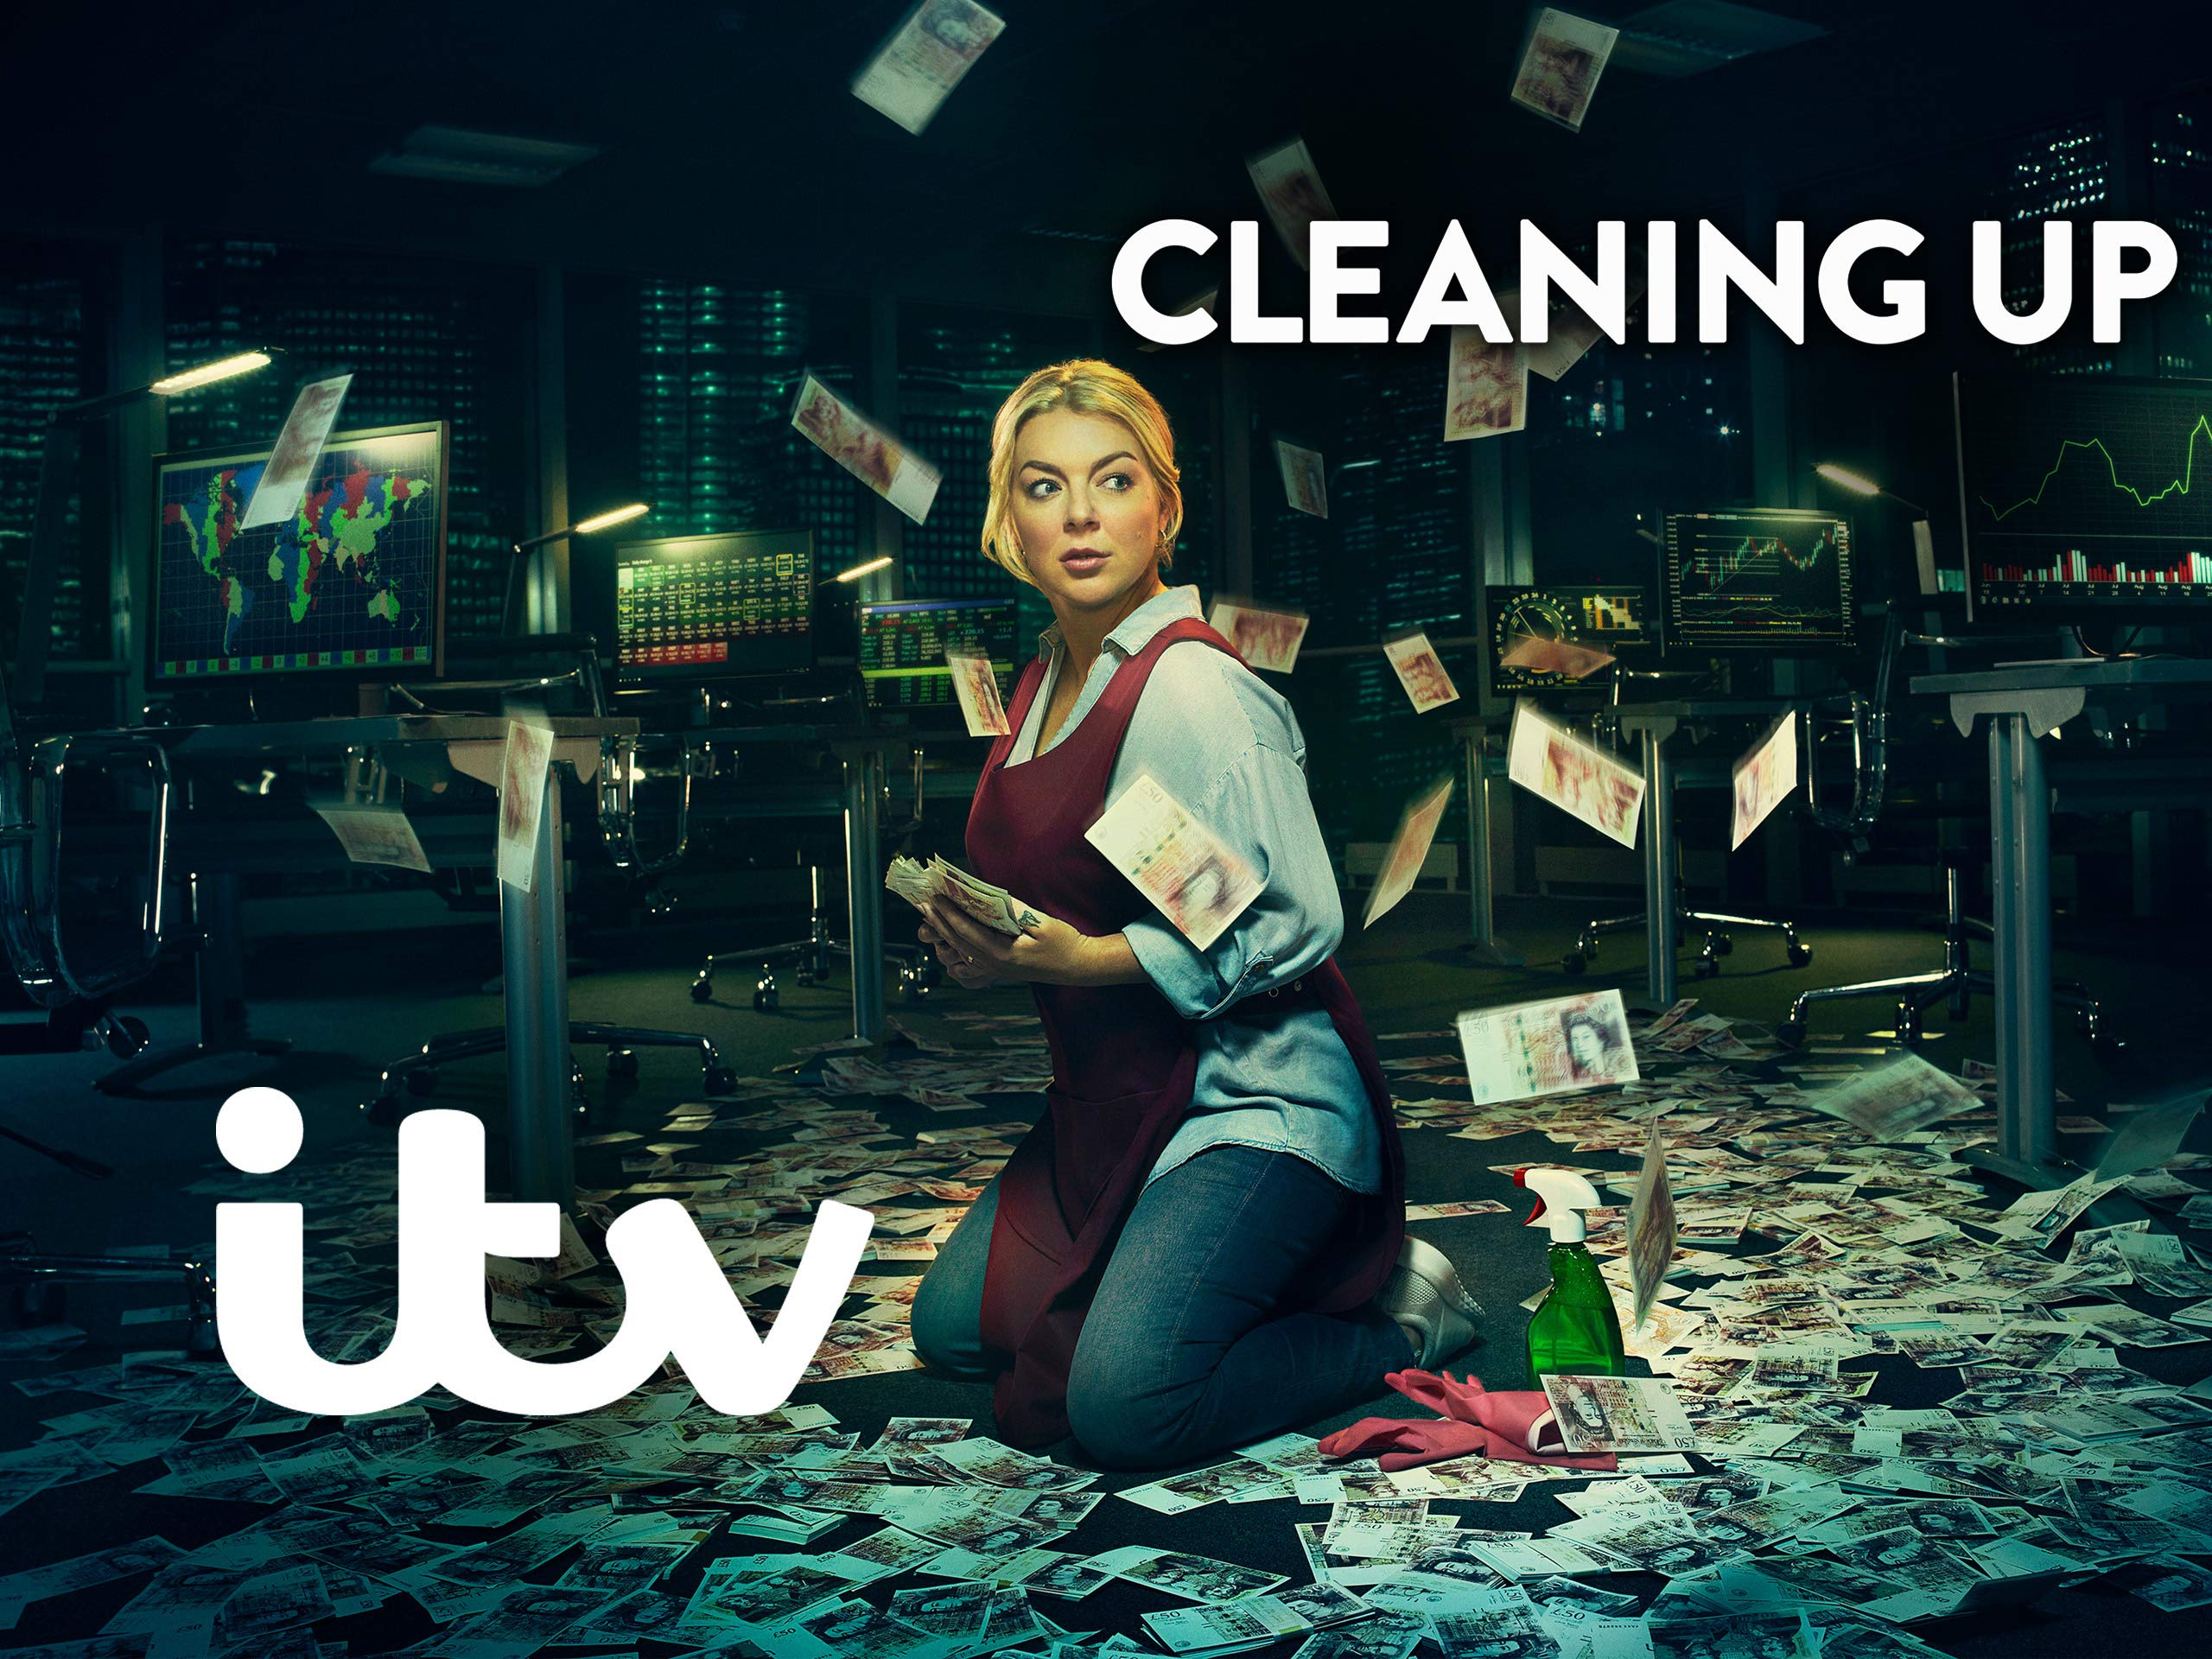 Amazon co uk: Watch Cleaning Up | Prime Video